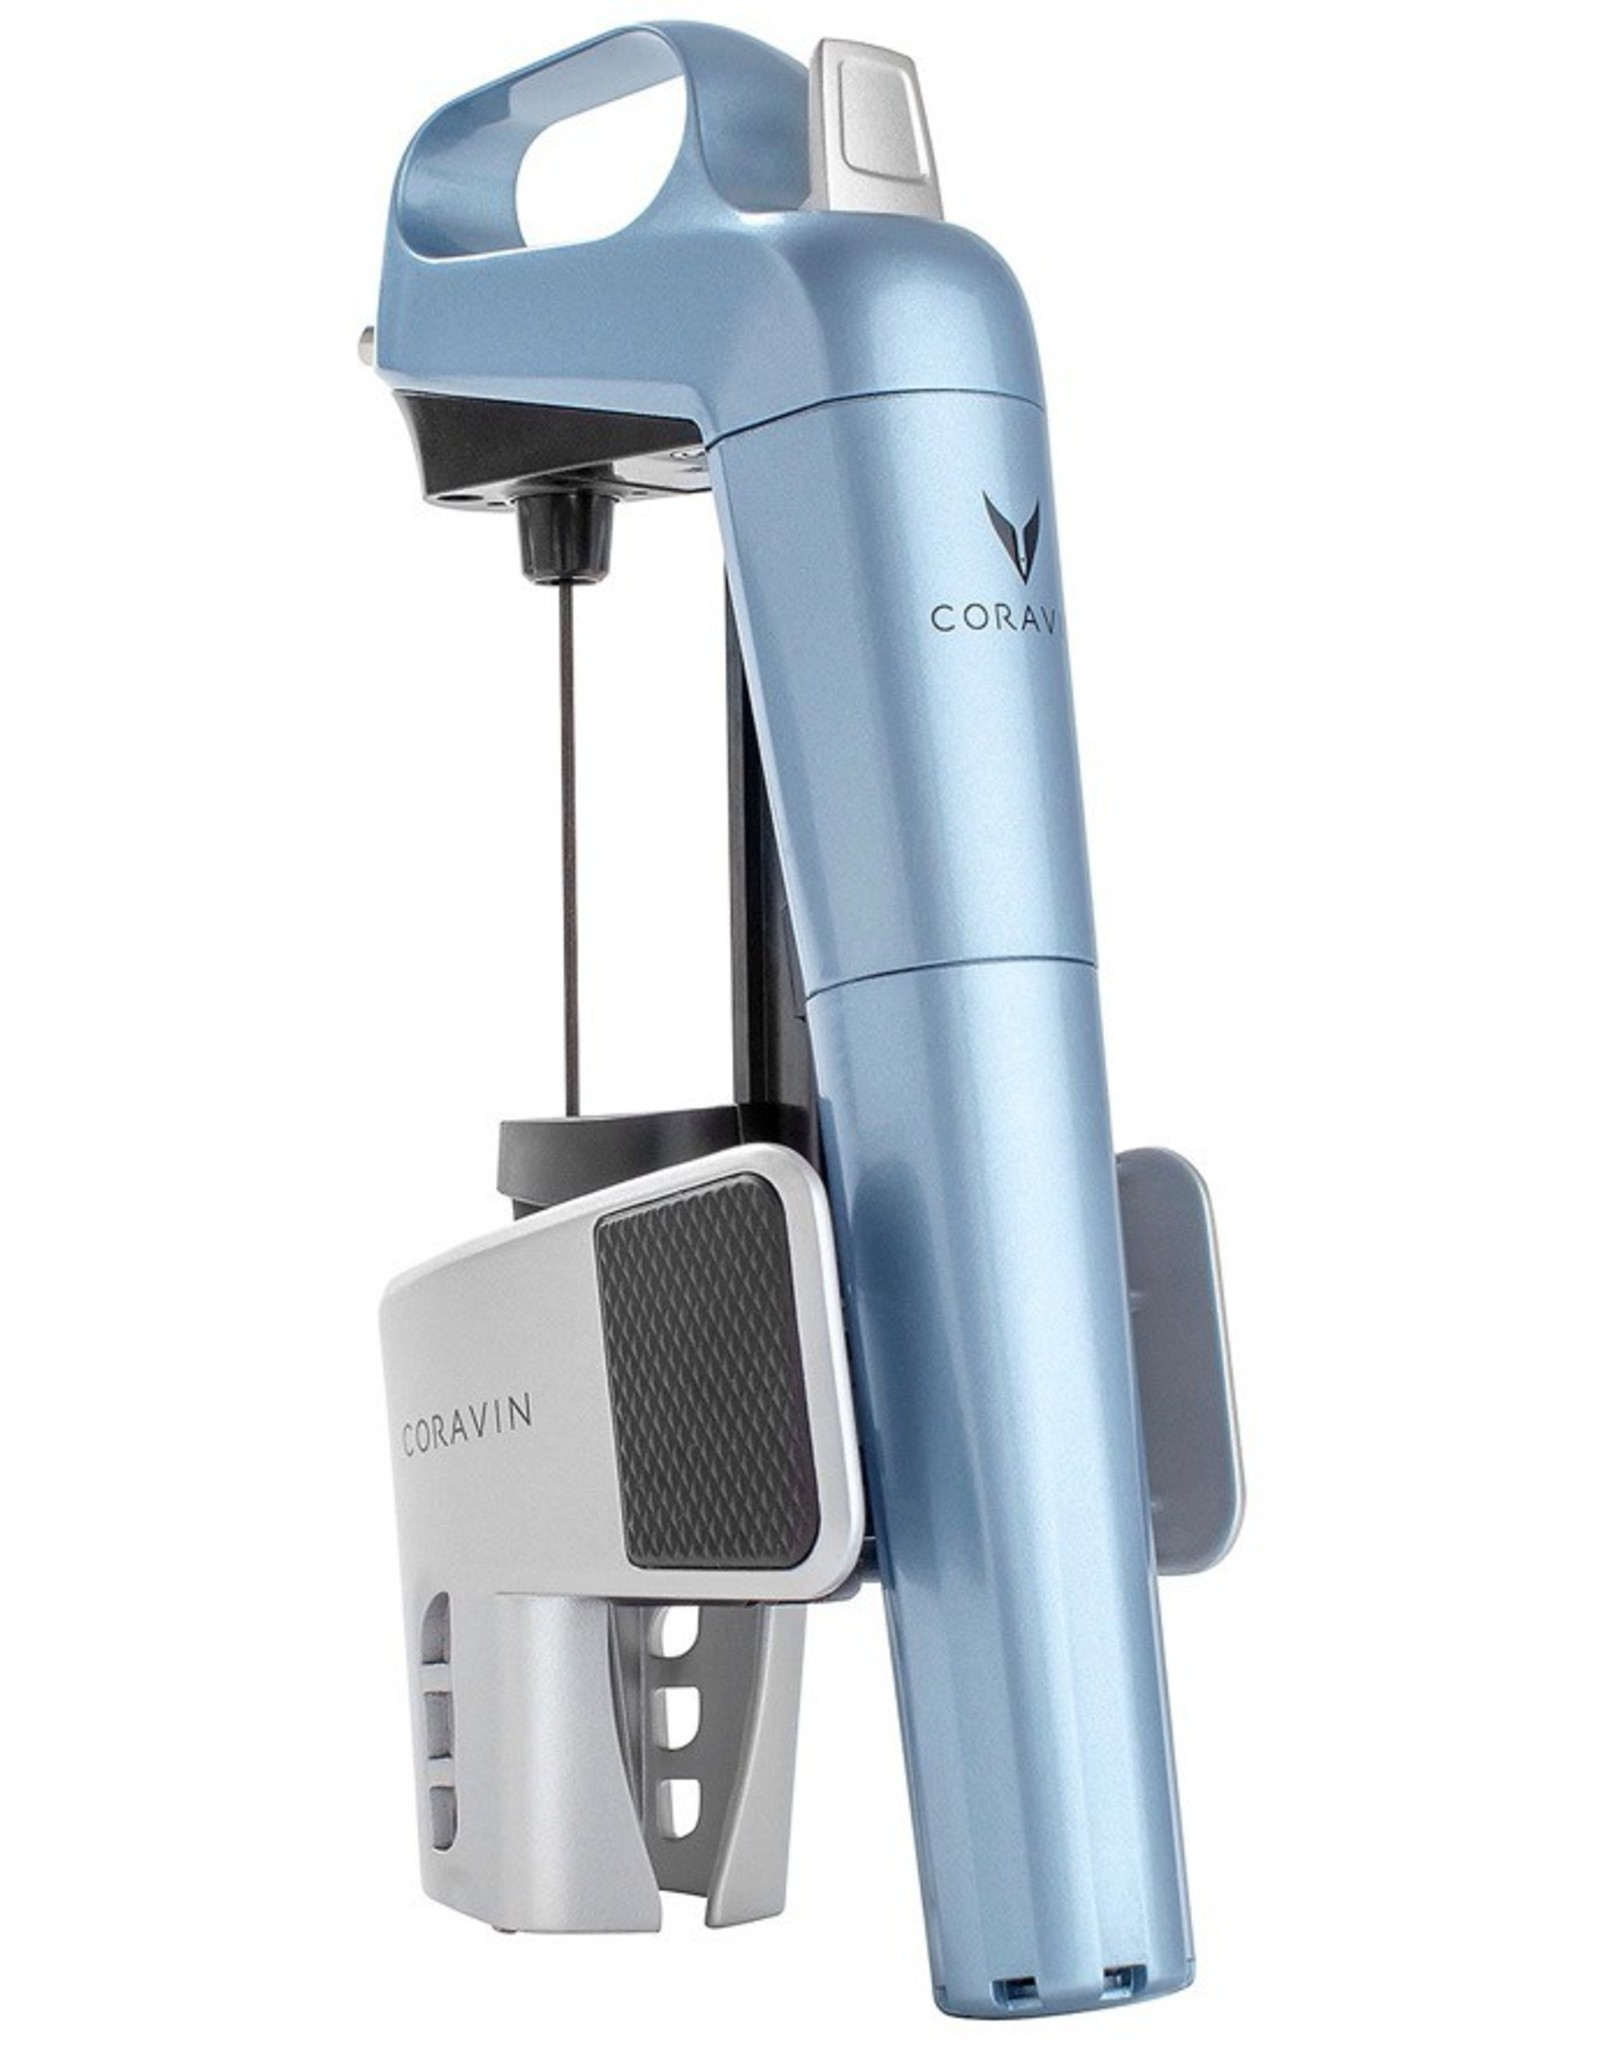 Misc. Coravin Special Edition Model - Metallic Blue - Wine Pouring System, with 2 Coravin PURE Capsules